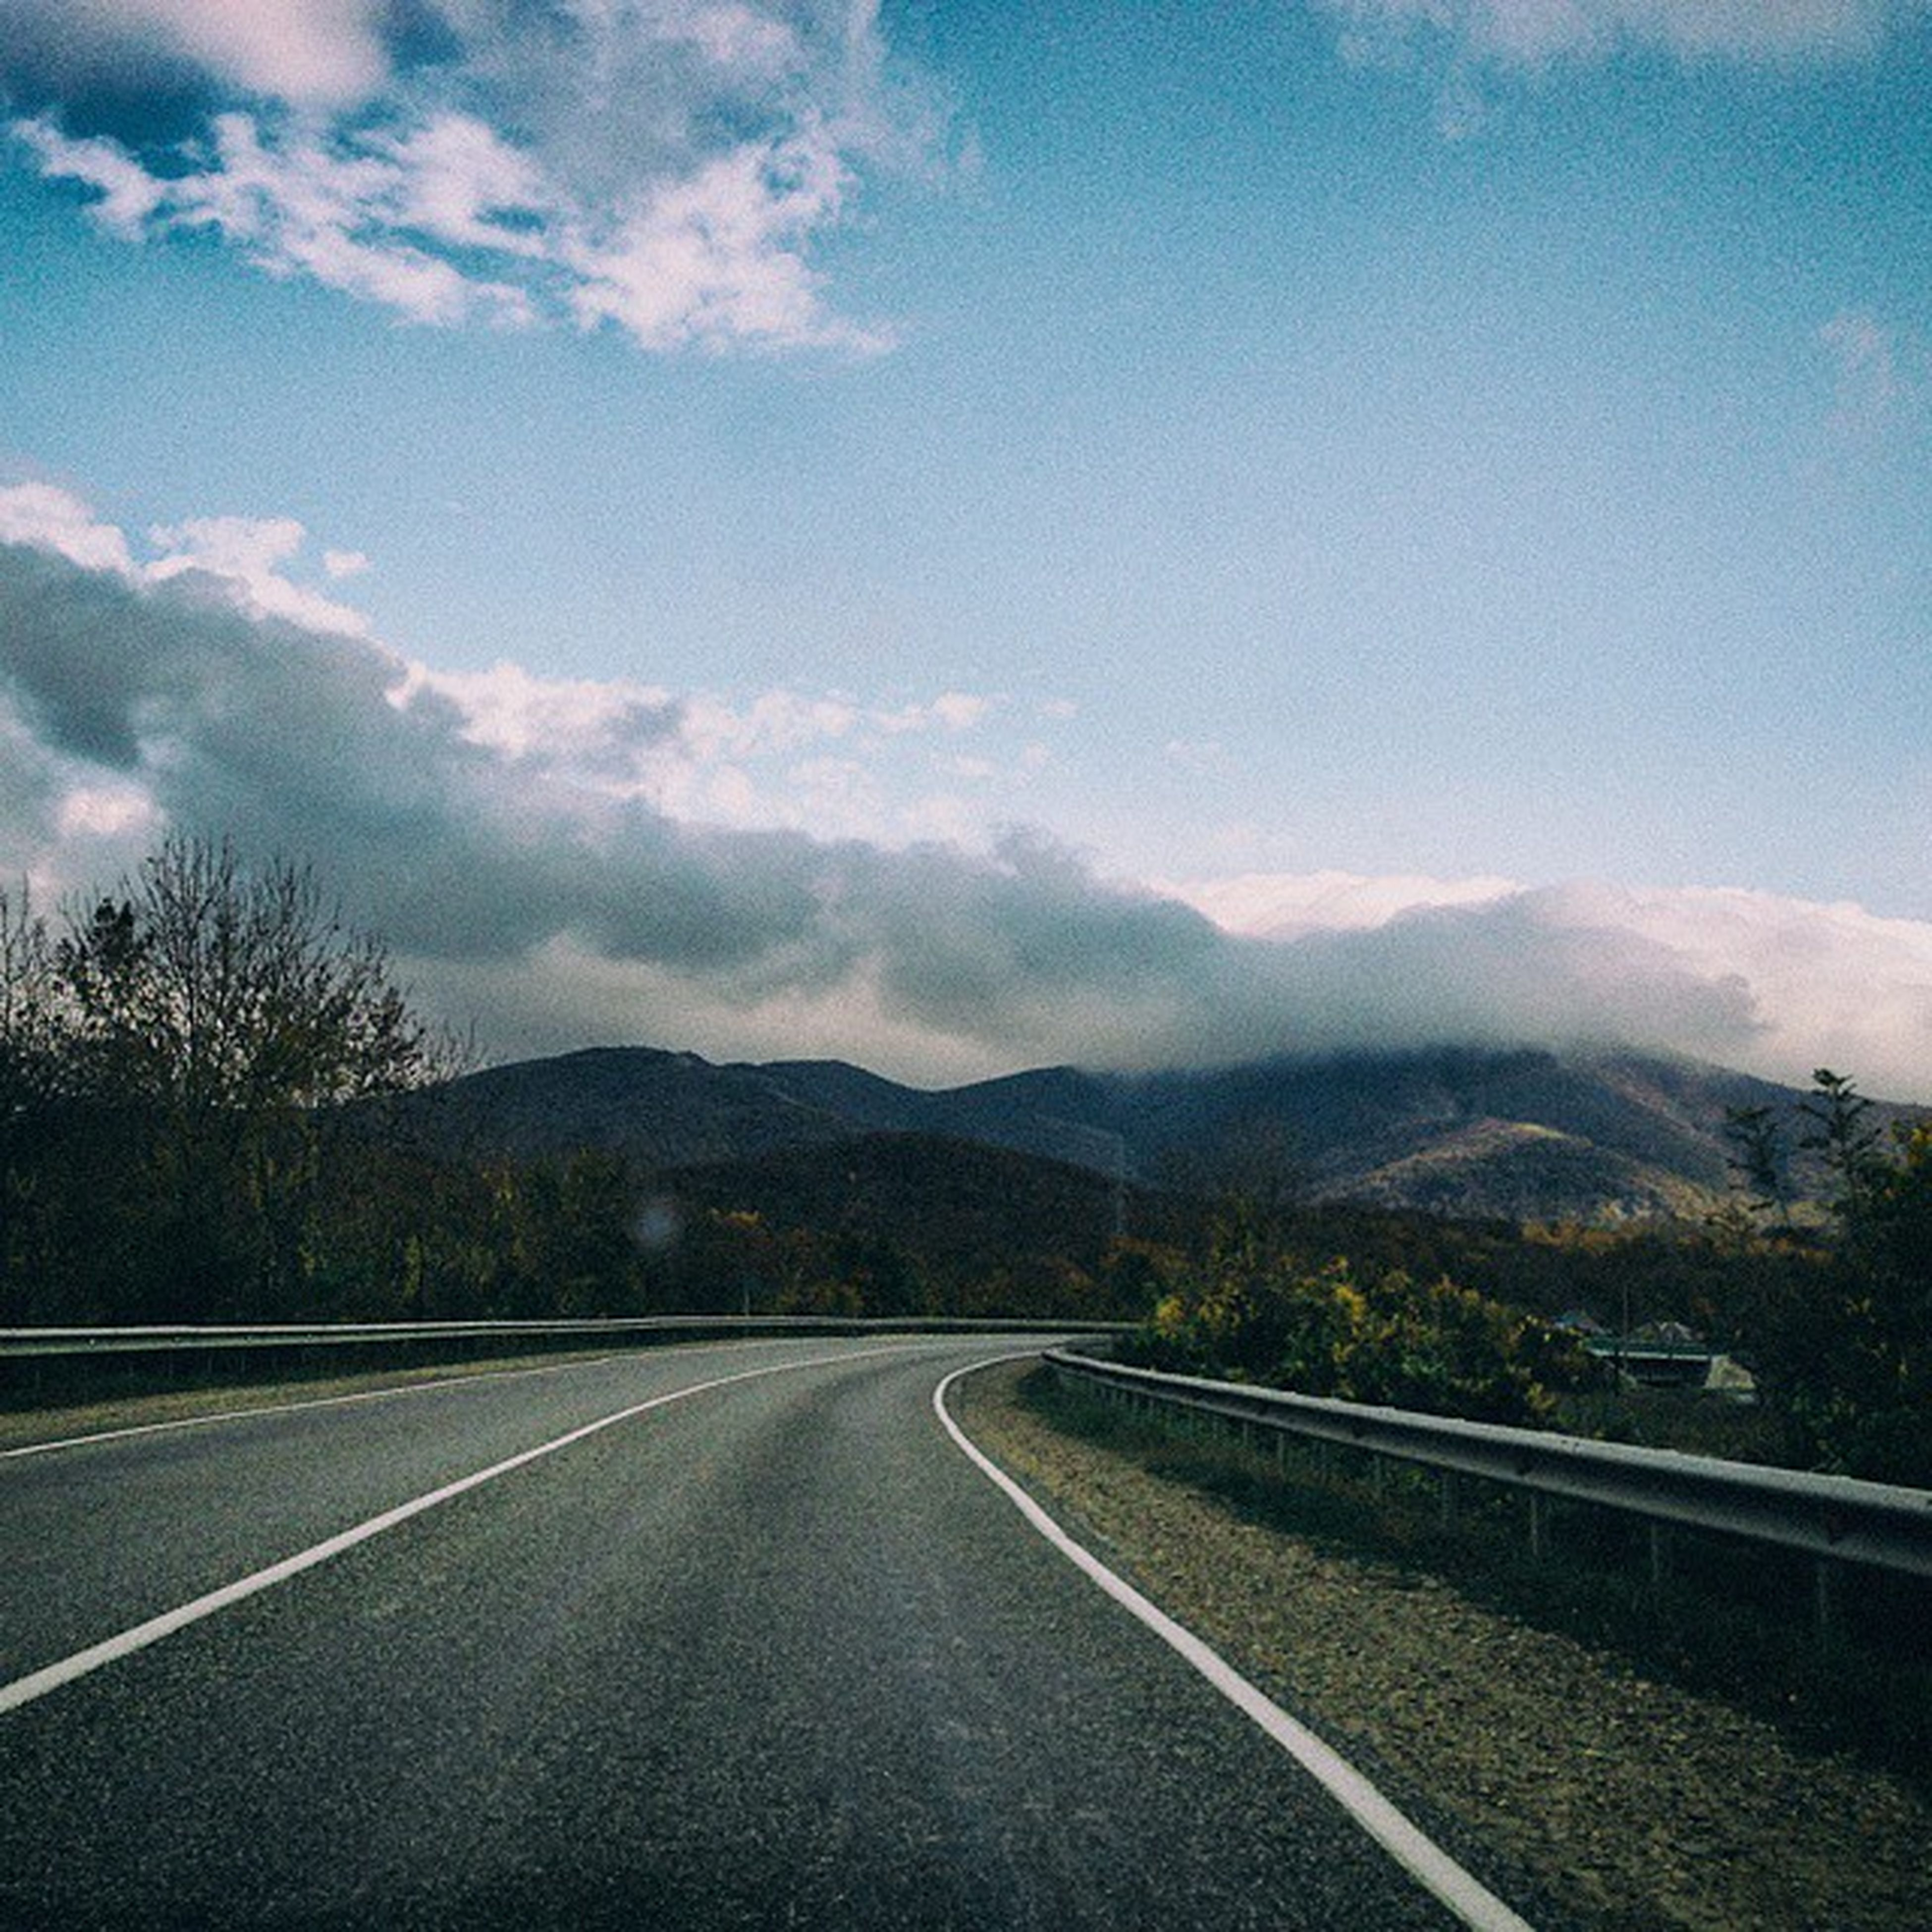 mountain, the way forward, road, sky, transportation, mountain range, diminishing perspective, road marking, landscape, cloud - sky, country road, cloud, vanishing point, tranquil scene, tranquility, tree, blue, scenics, nature, empty